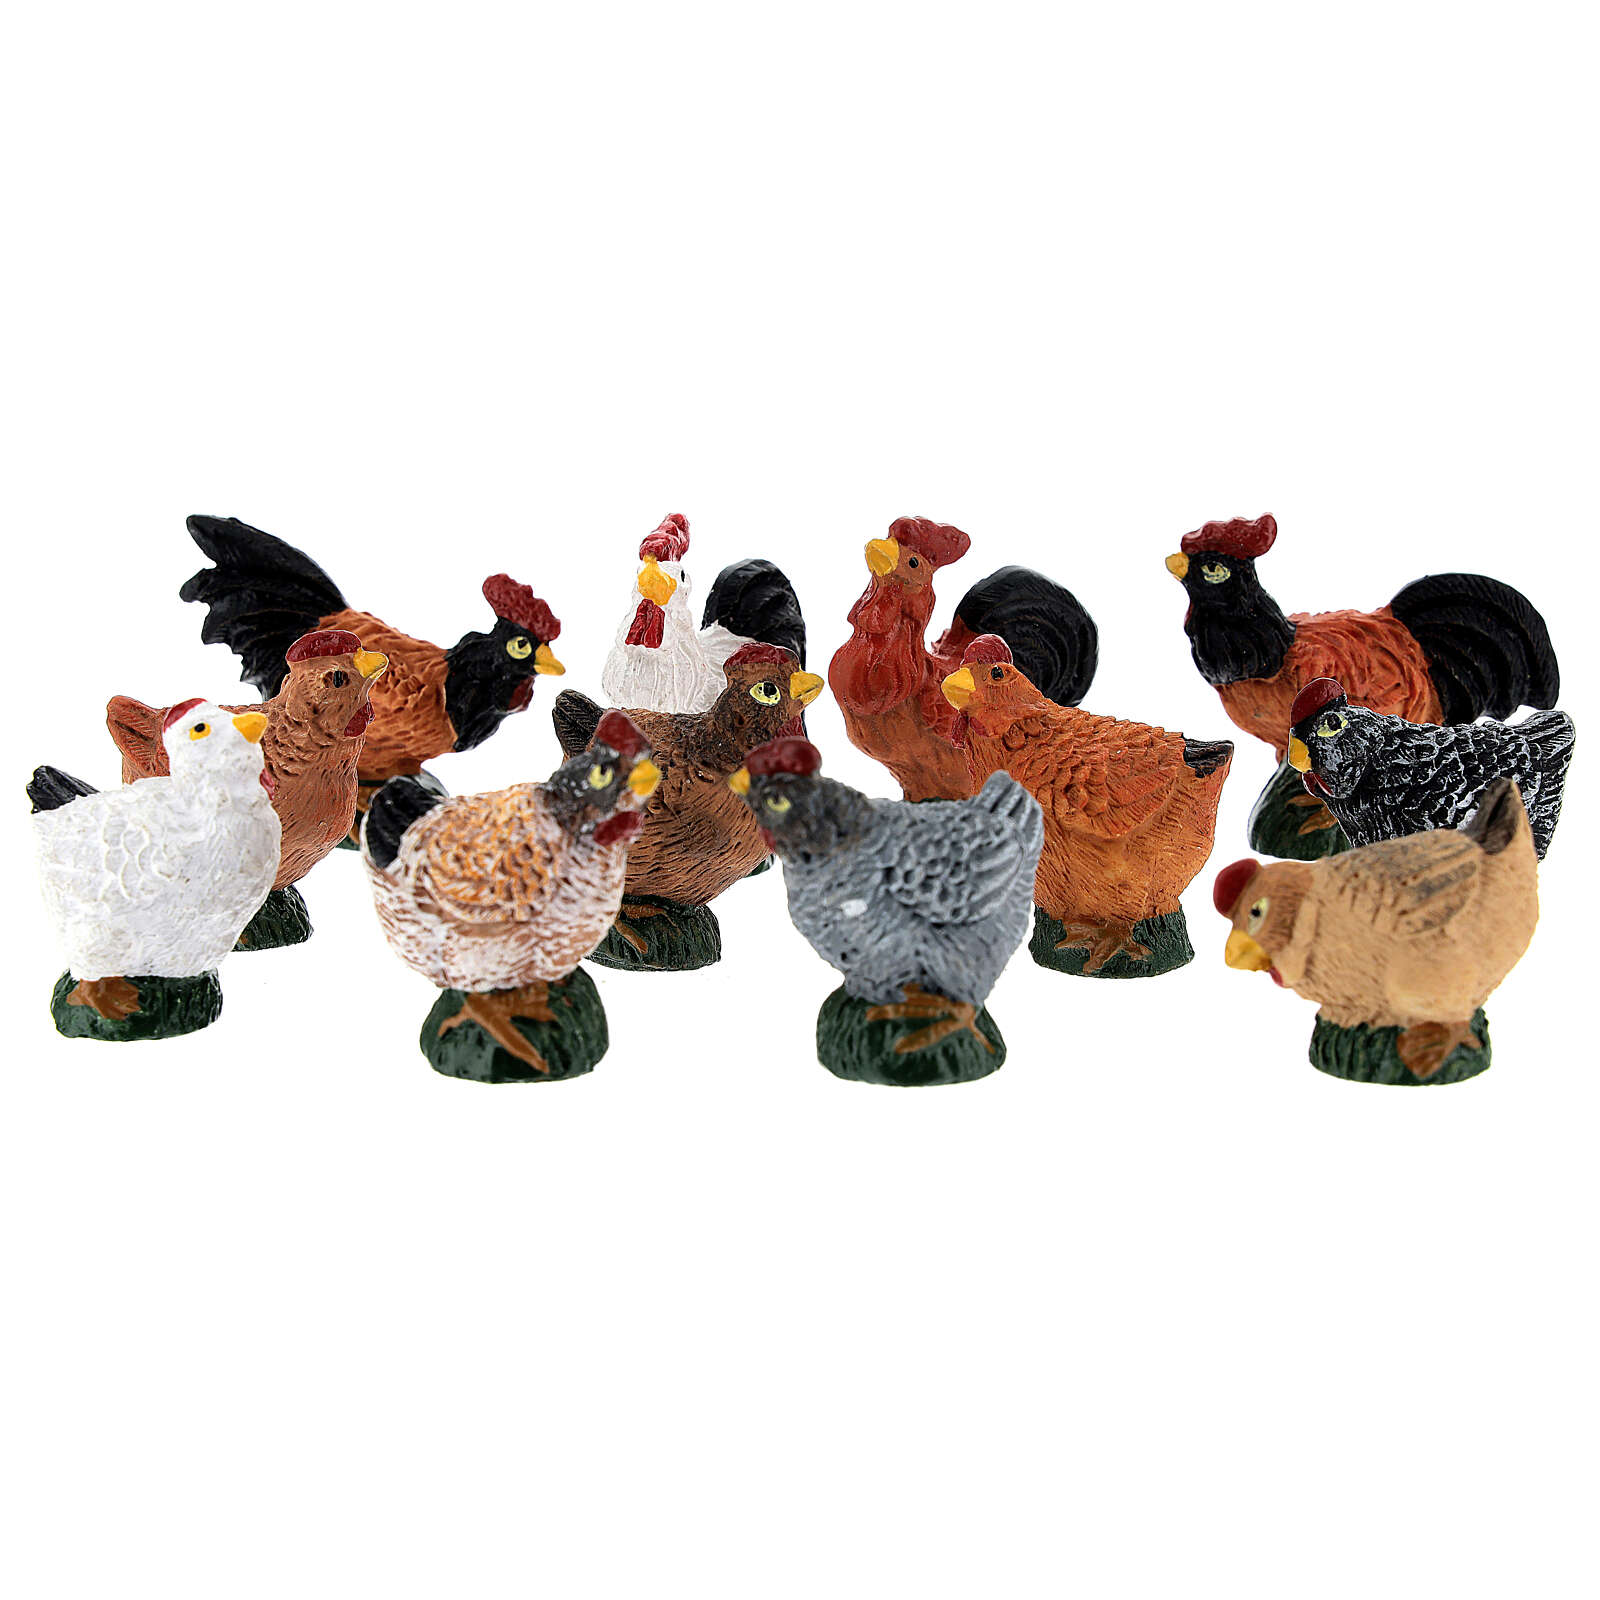 Mini roosters and hens 12 pcs set, 8-10 cm nativity 3